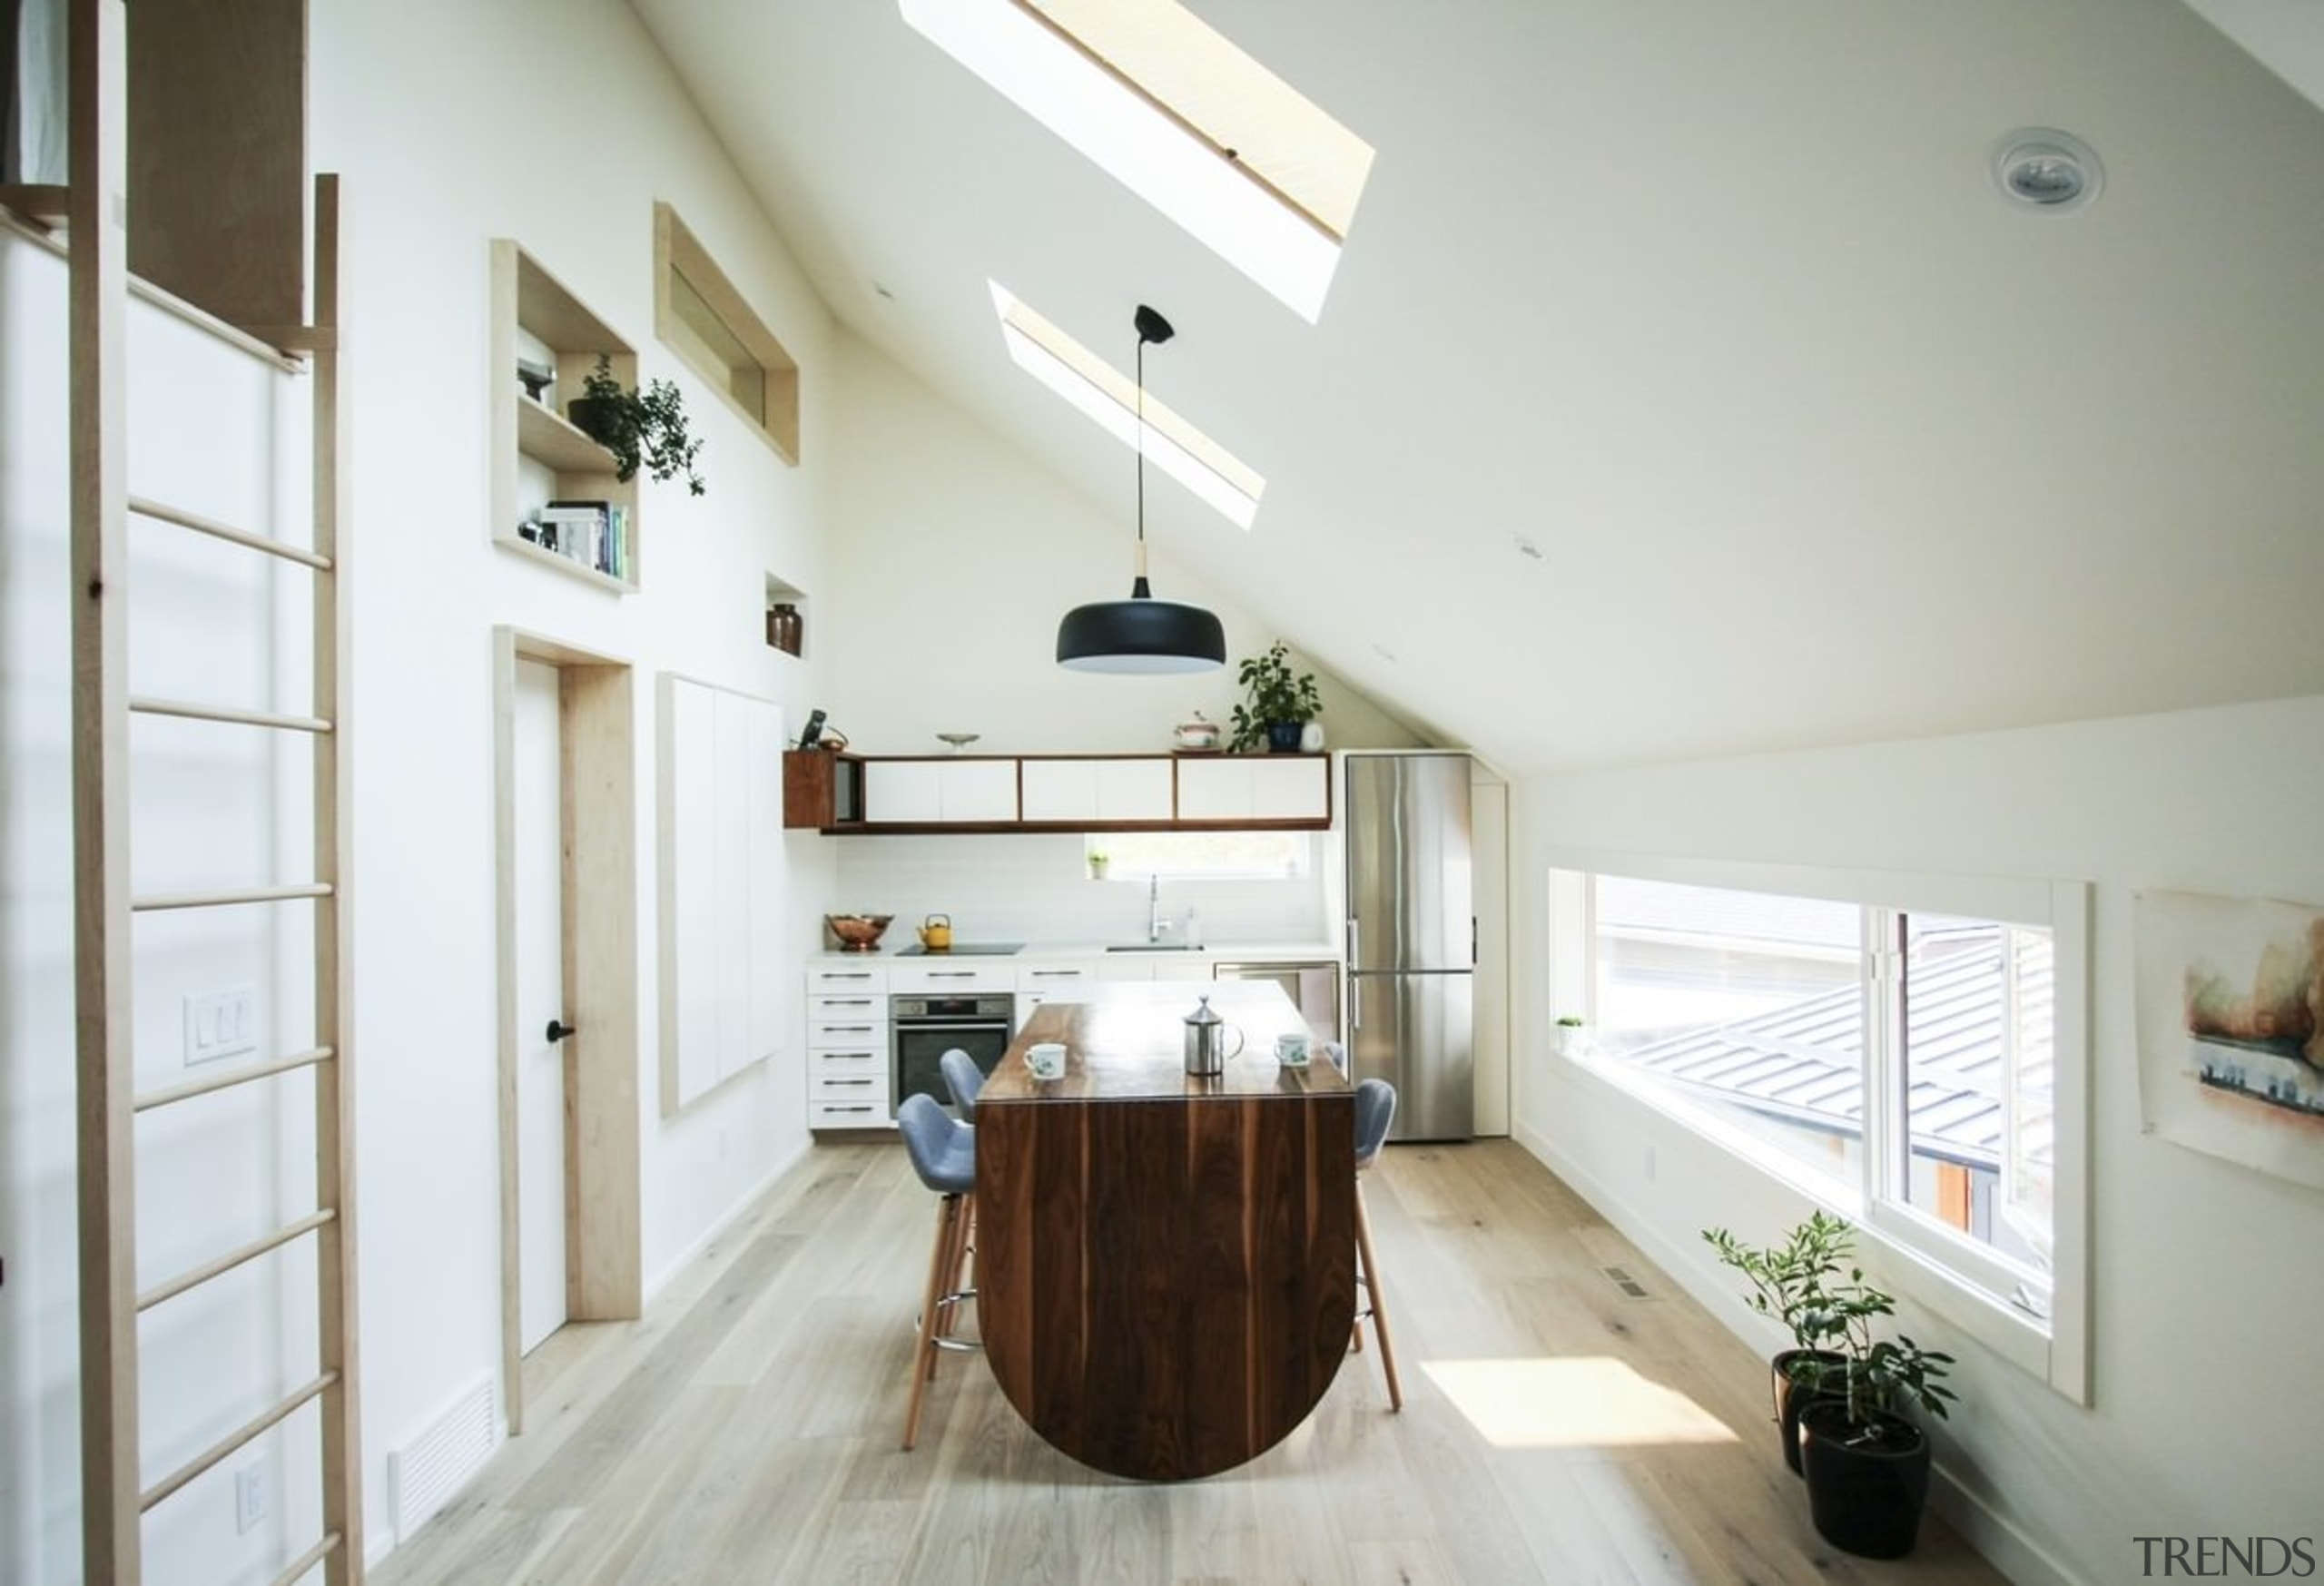 Skylights spaced along the ceiling illuminate the kitchen/dining ceiling, countertop, cuisine classique, daylighting, floor, home, house, interior design, kitchen, property, real estate, room, gray, white